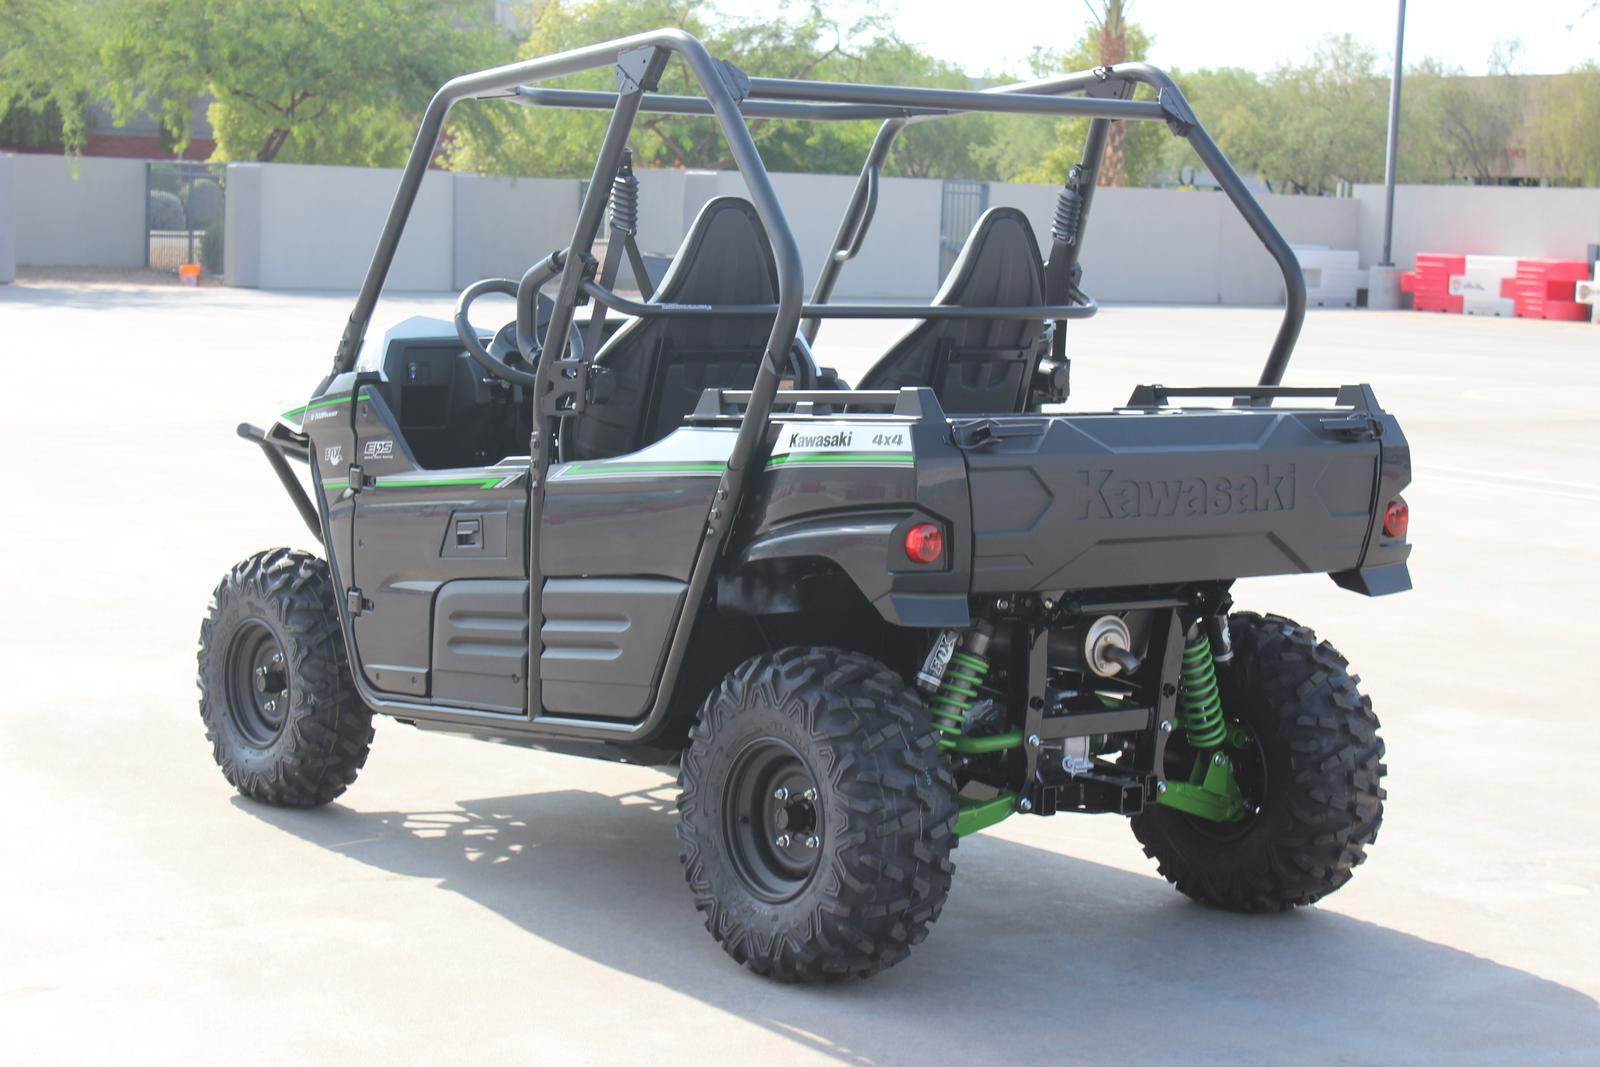 2019 Kawasaki Teryx For Sale In Scottsdale Az Go Az